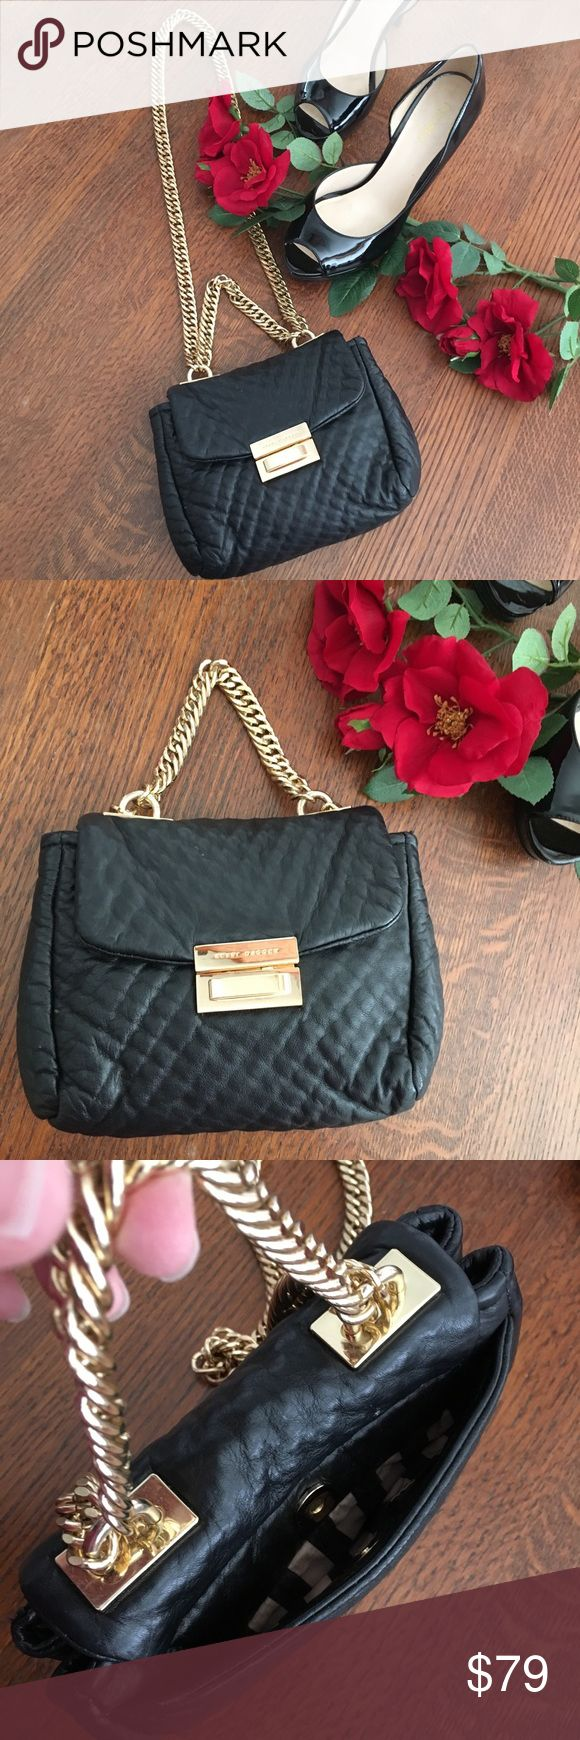 """🆕 Black Leather Bag Two thick gold chain handles. Use one hide the other in back magnetic closure pocket. Gold chain handles have a 4"""" drop & 17"""" drop. Bag measures 7"""" wide & 6"""" tall. Sides are 3.5"""" wide. Center zipper divider & one additional zipper pocket inside. Also two open pockets. Top flap has a gold slide buckle clasp. In excellent almost like new condition. Kelsi Dagger Bags Mini Bags"""